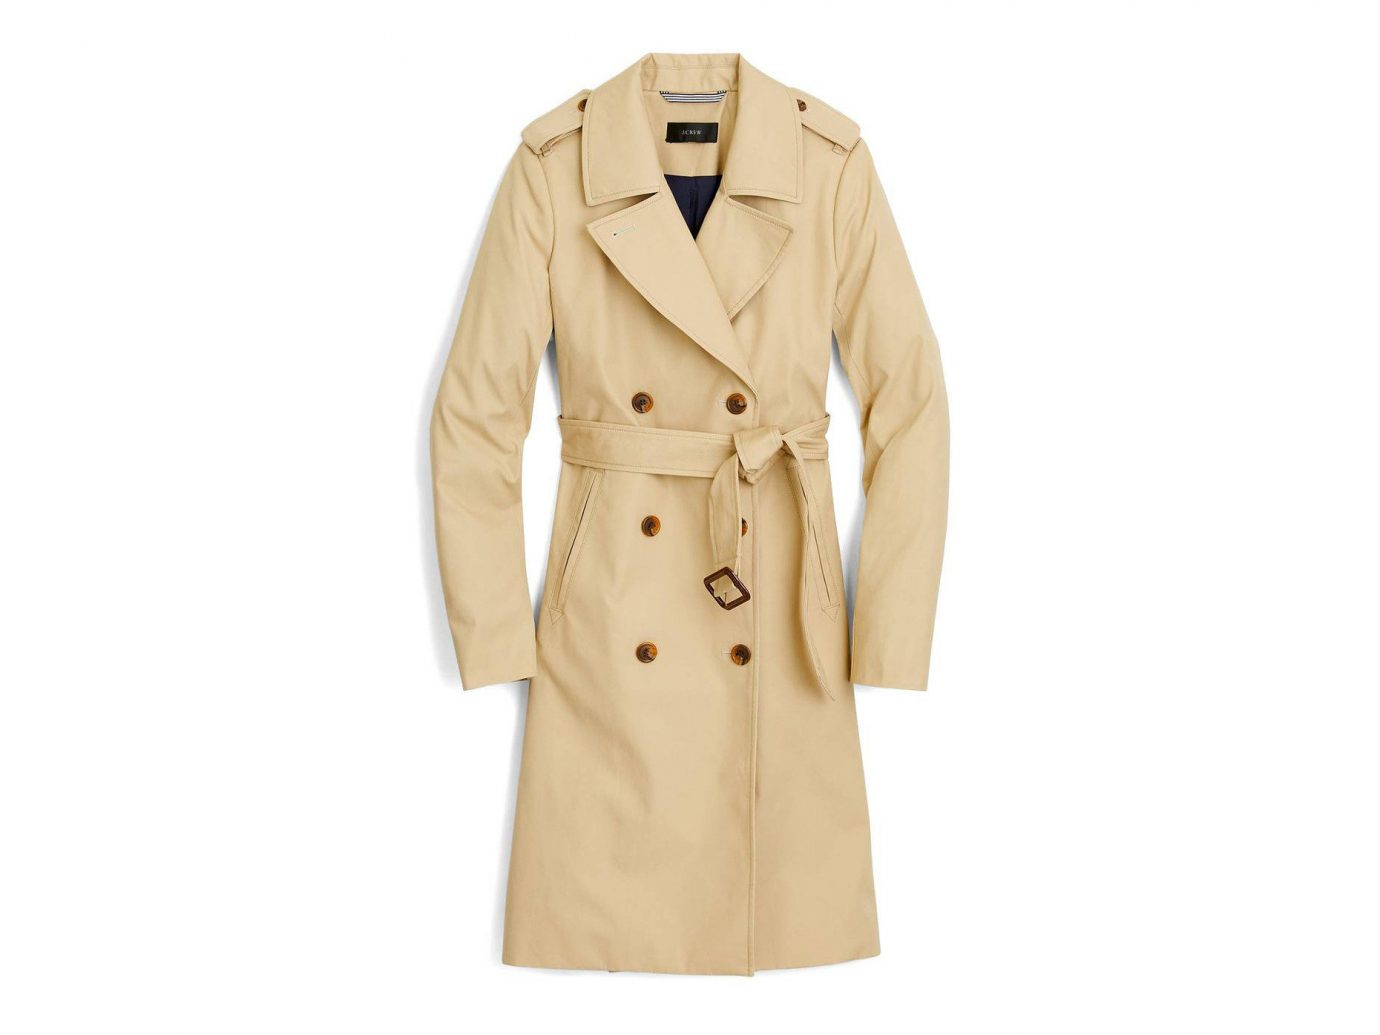 France Style + Design Travel Shop coat clothing trench coat overcoat beige